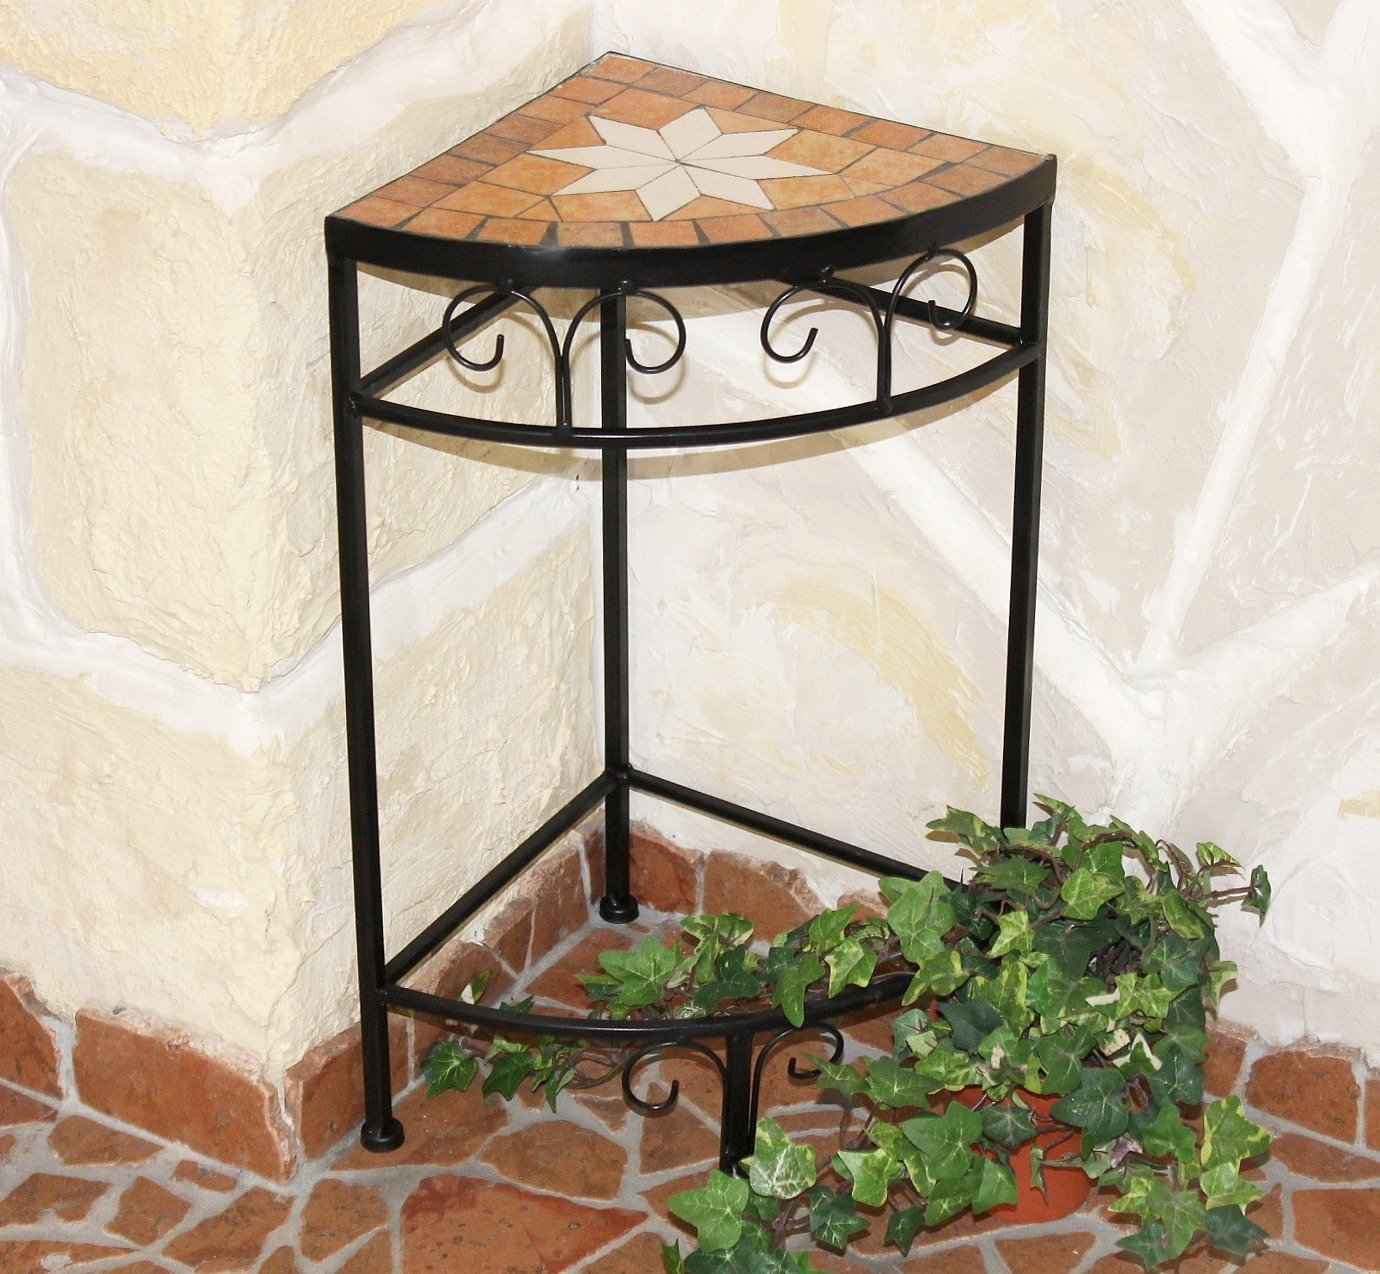 Merano 12013 Flower Stand / Corner Table with Mosaic Tabletop 52cm DanDiBo